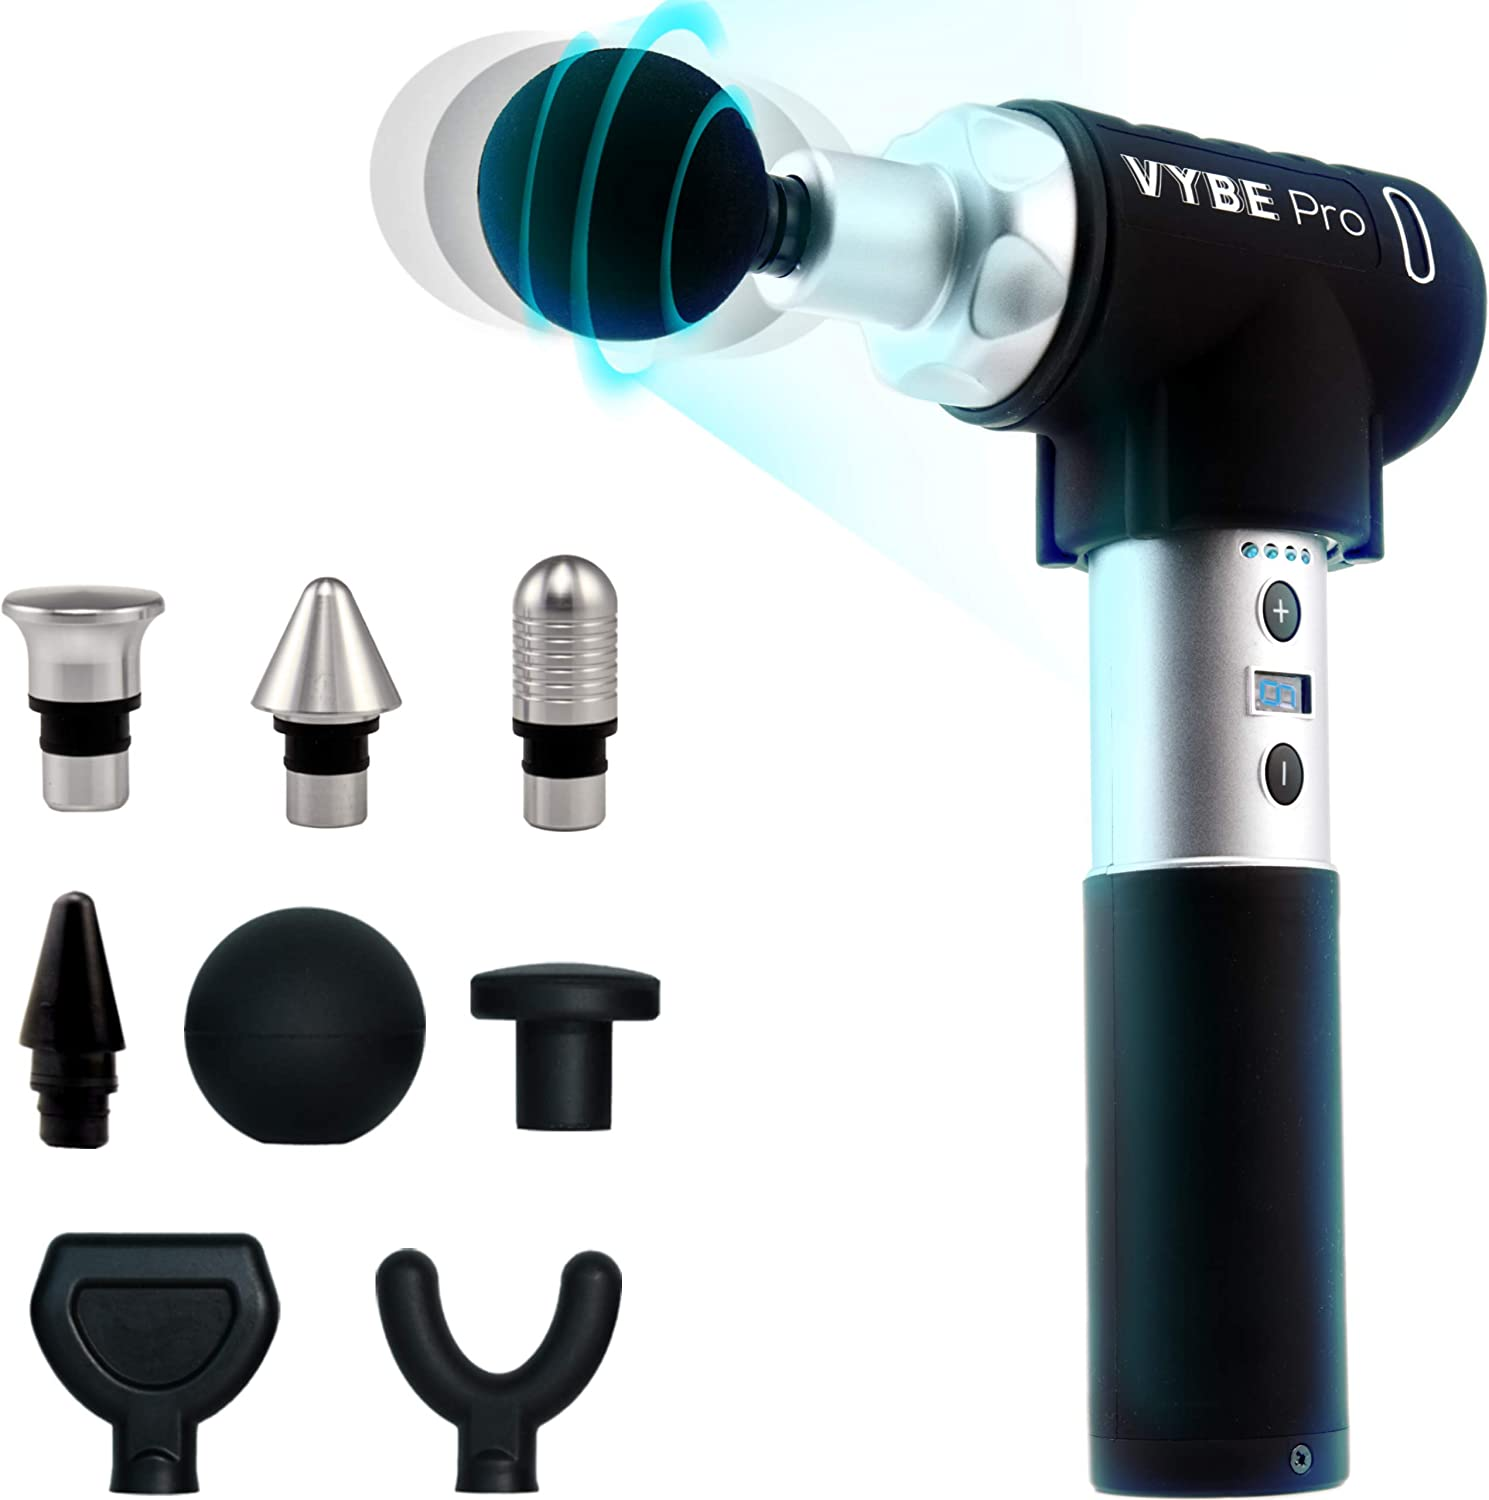 VYBE Percussion Massage Gun - Pro Model- Massager for Deep Tissue Muscle